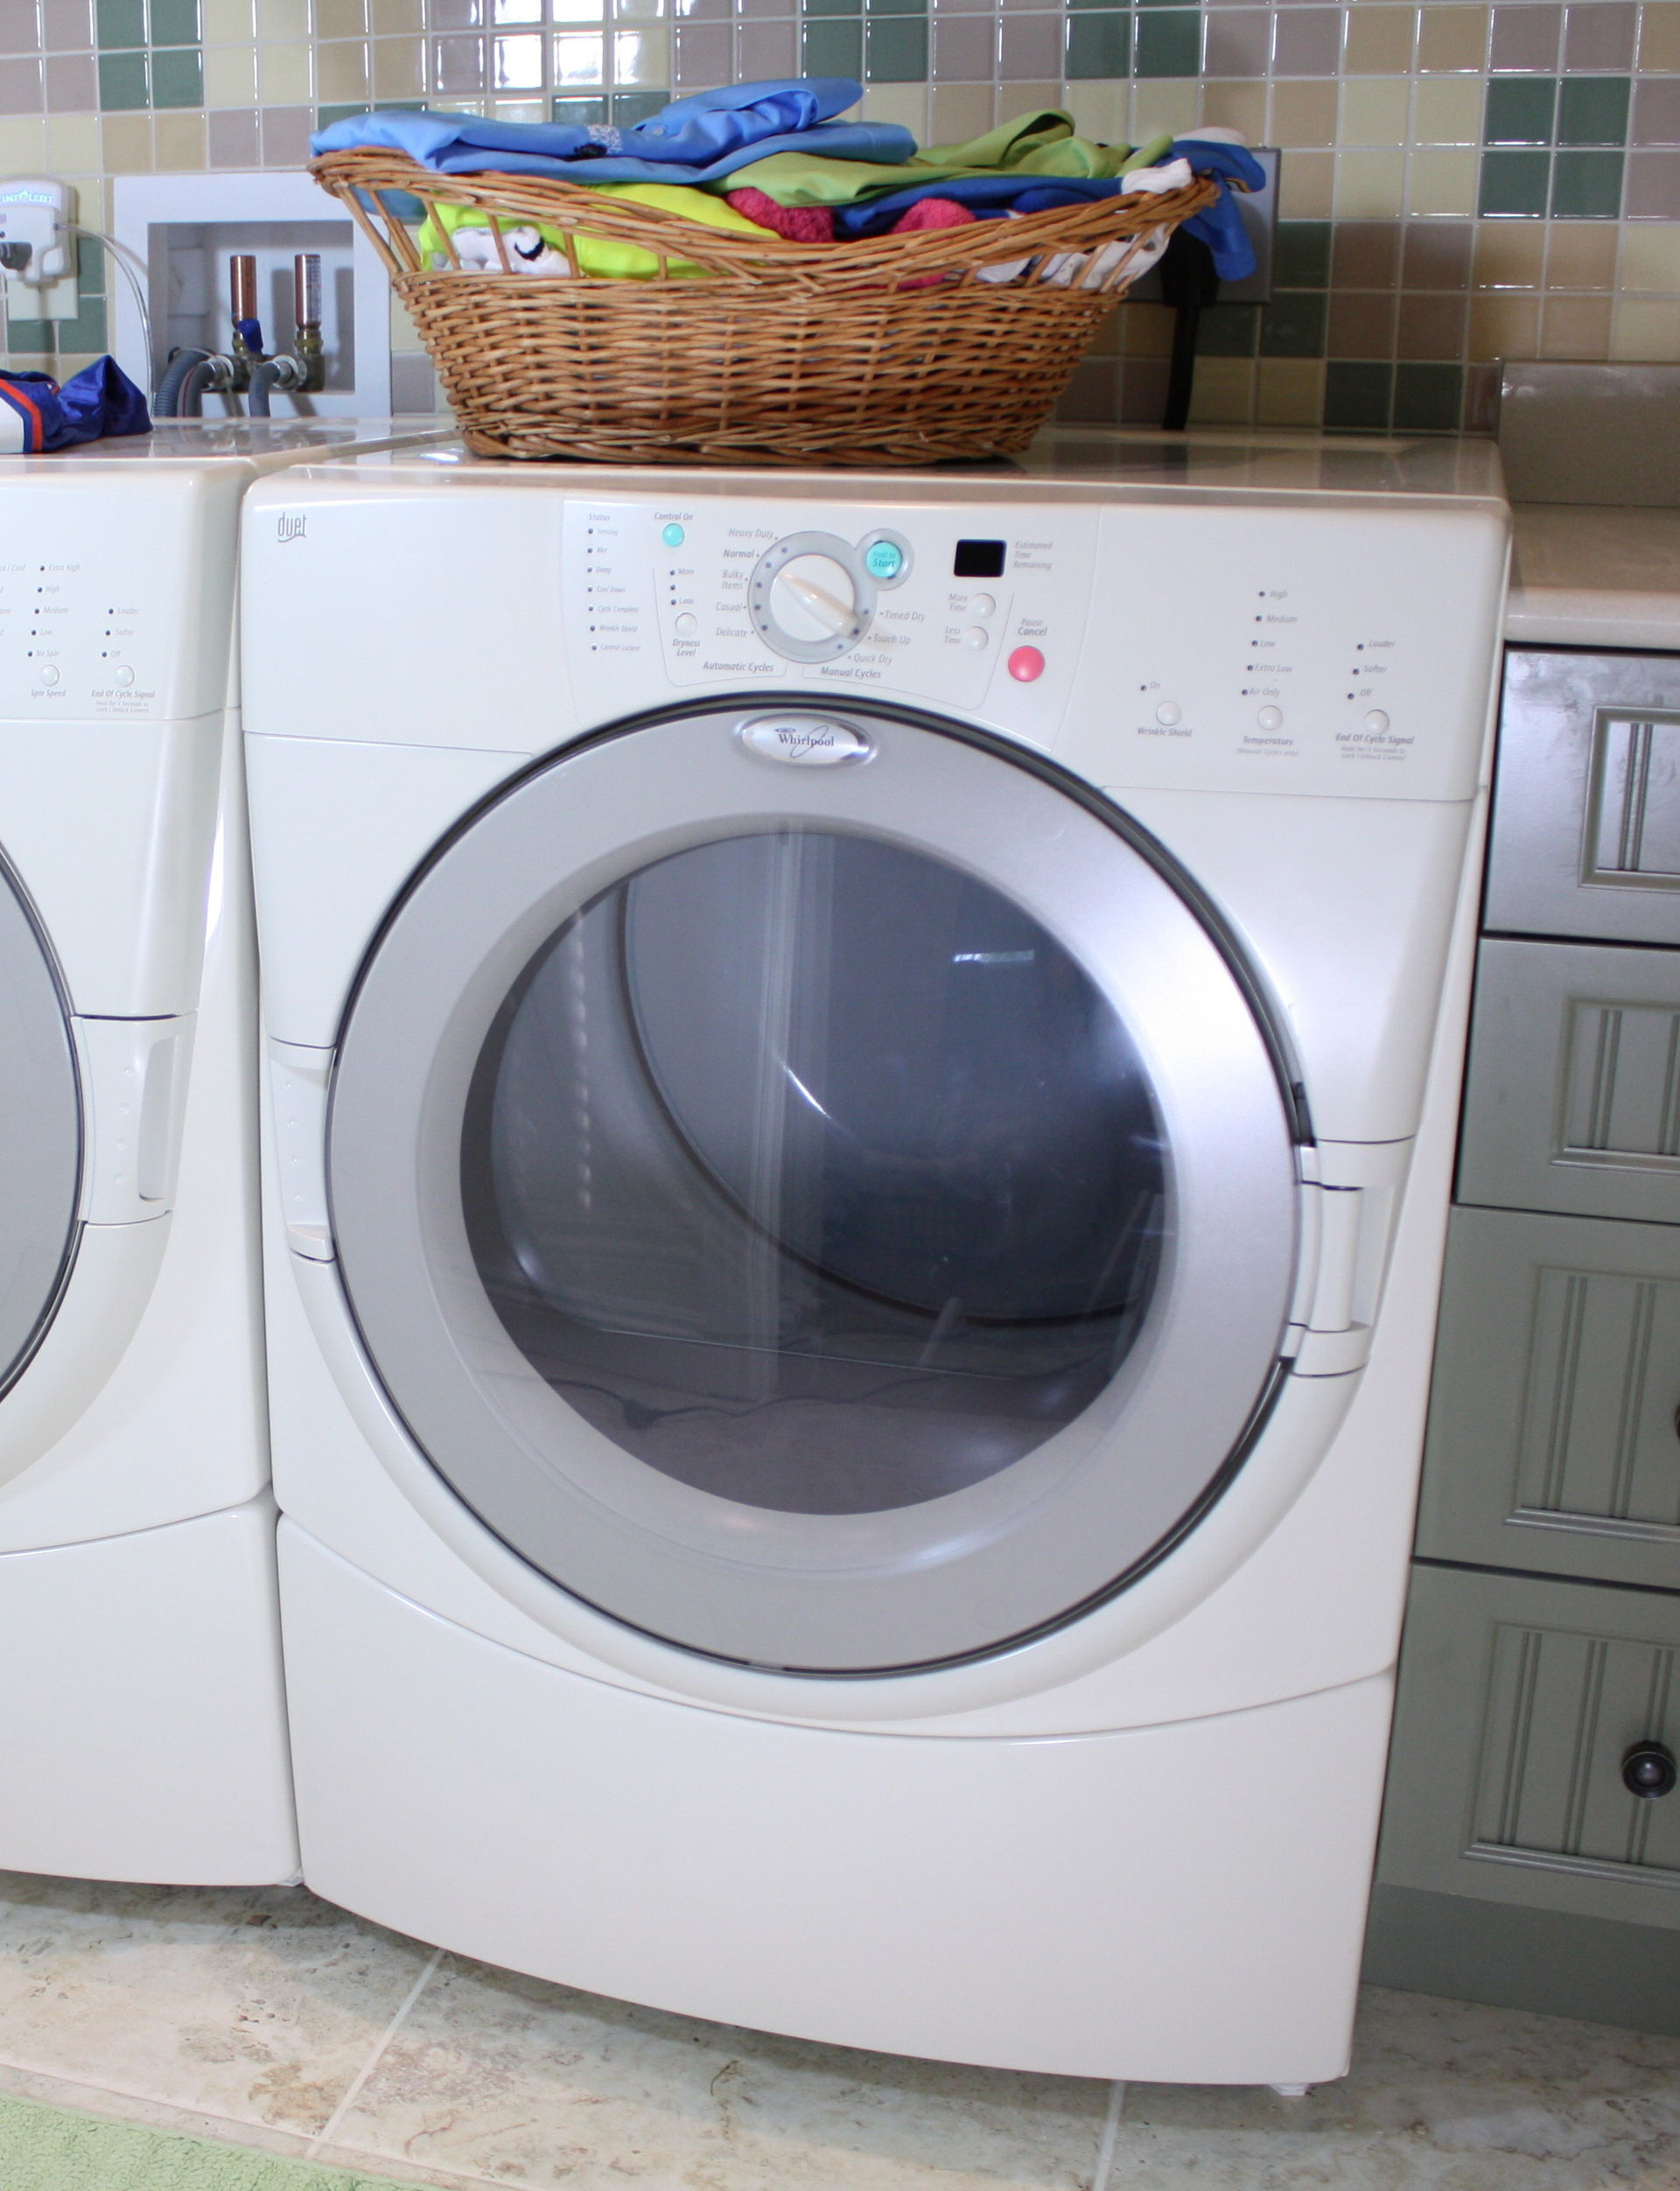 Clothes Dryer Wikipedia